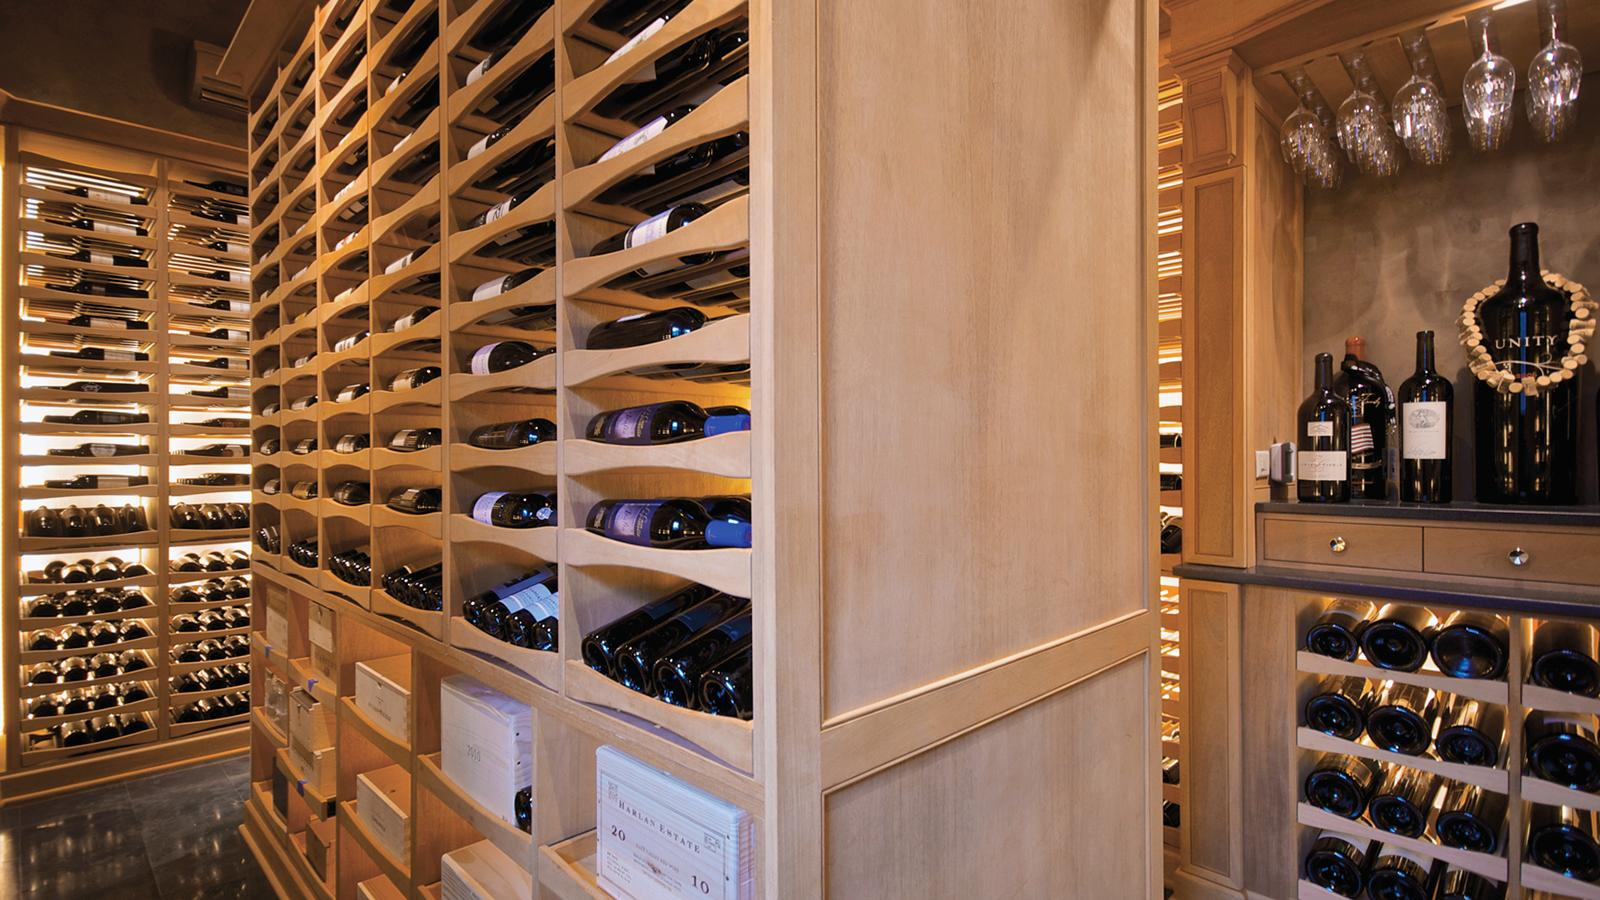 Wine cellar in a private house with their own hands: photos, tips on installation and equipment 84